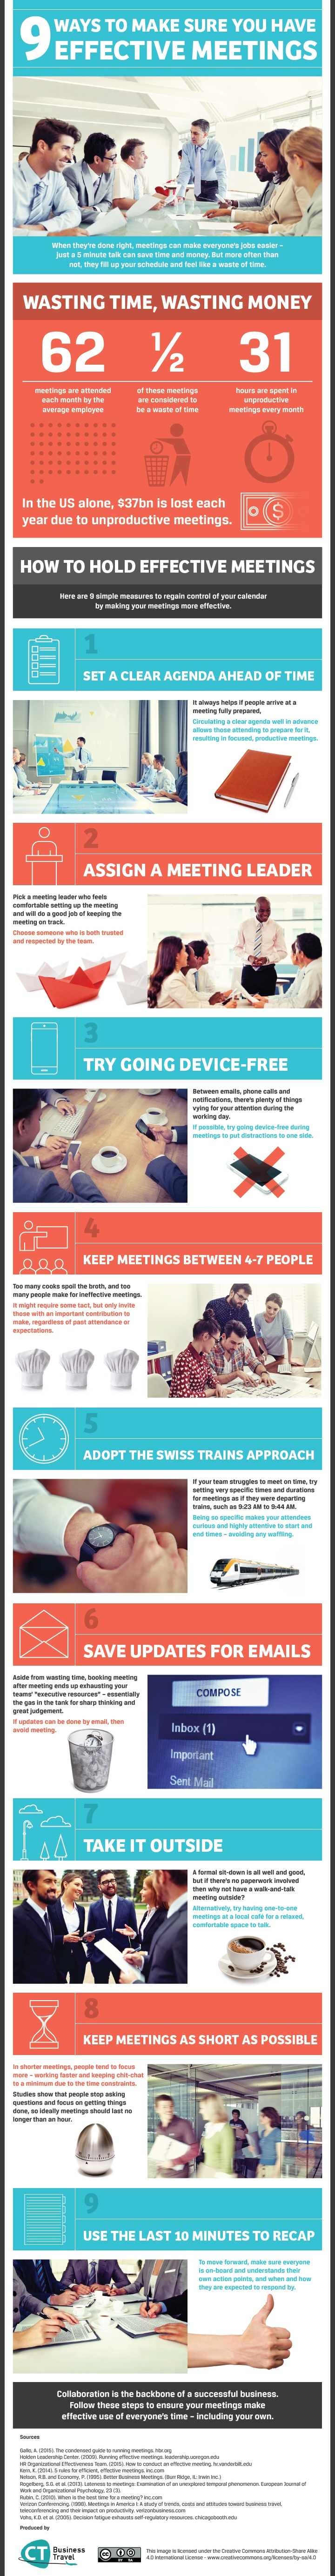 effective-meetings-infographic.jpg